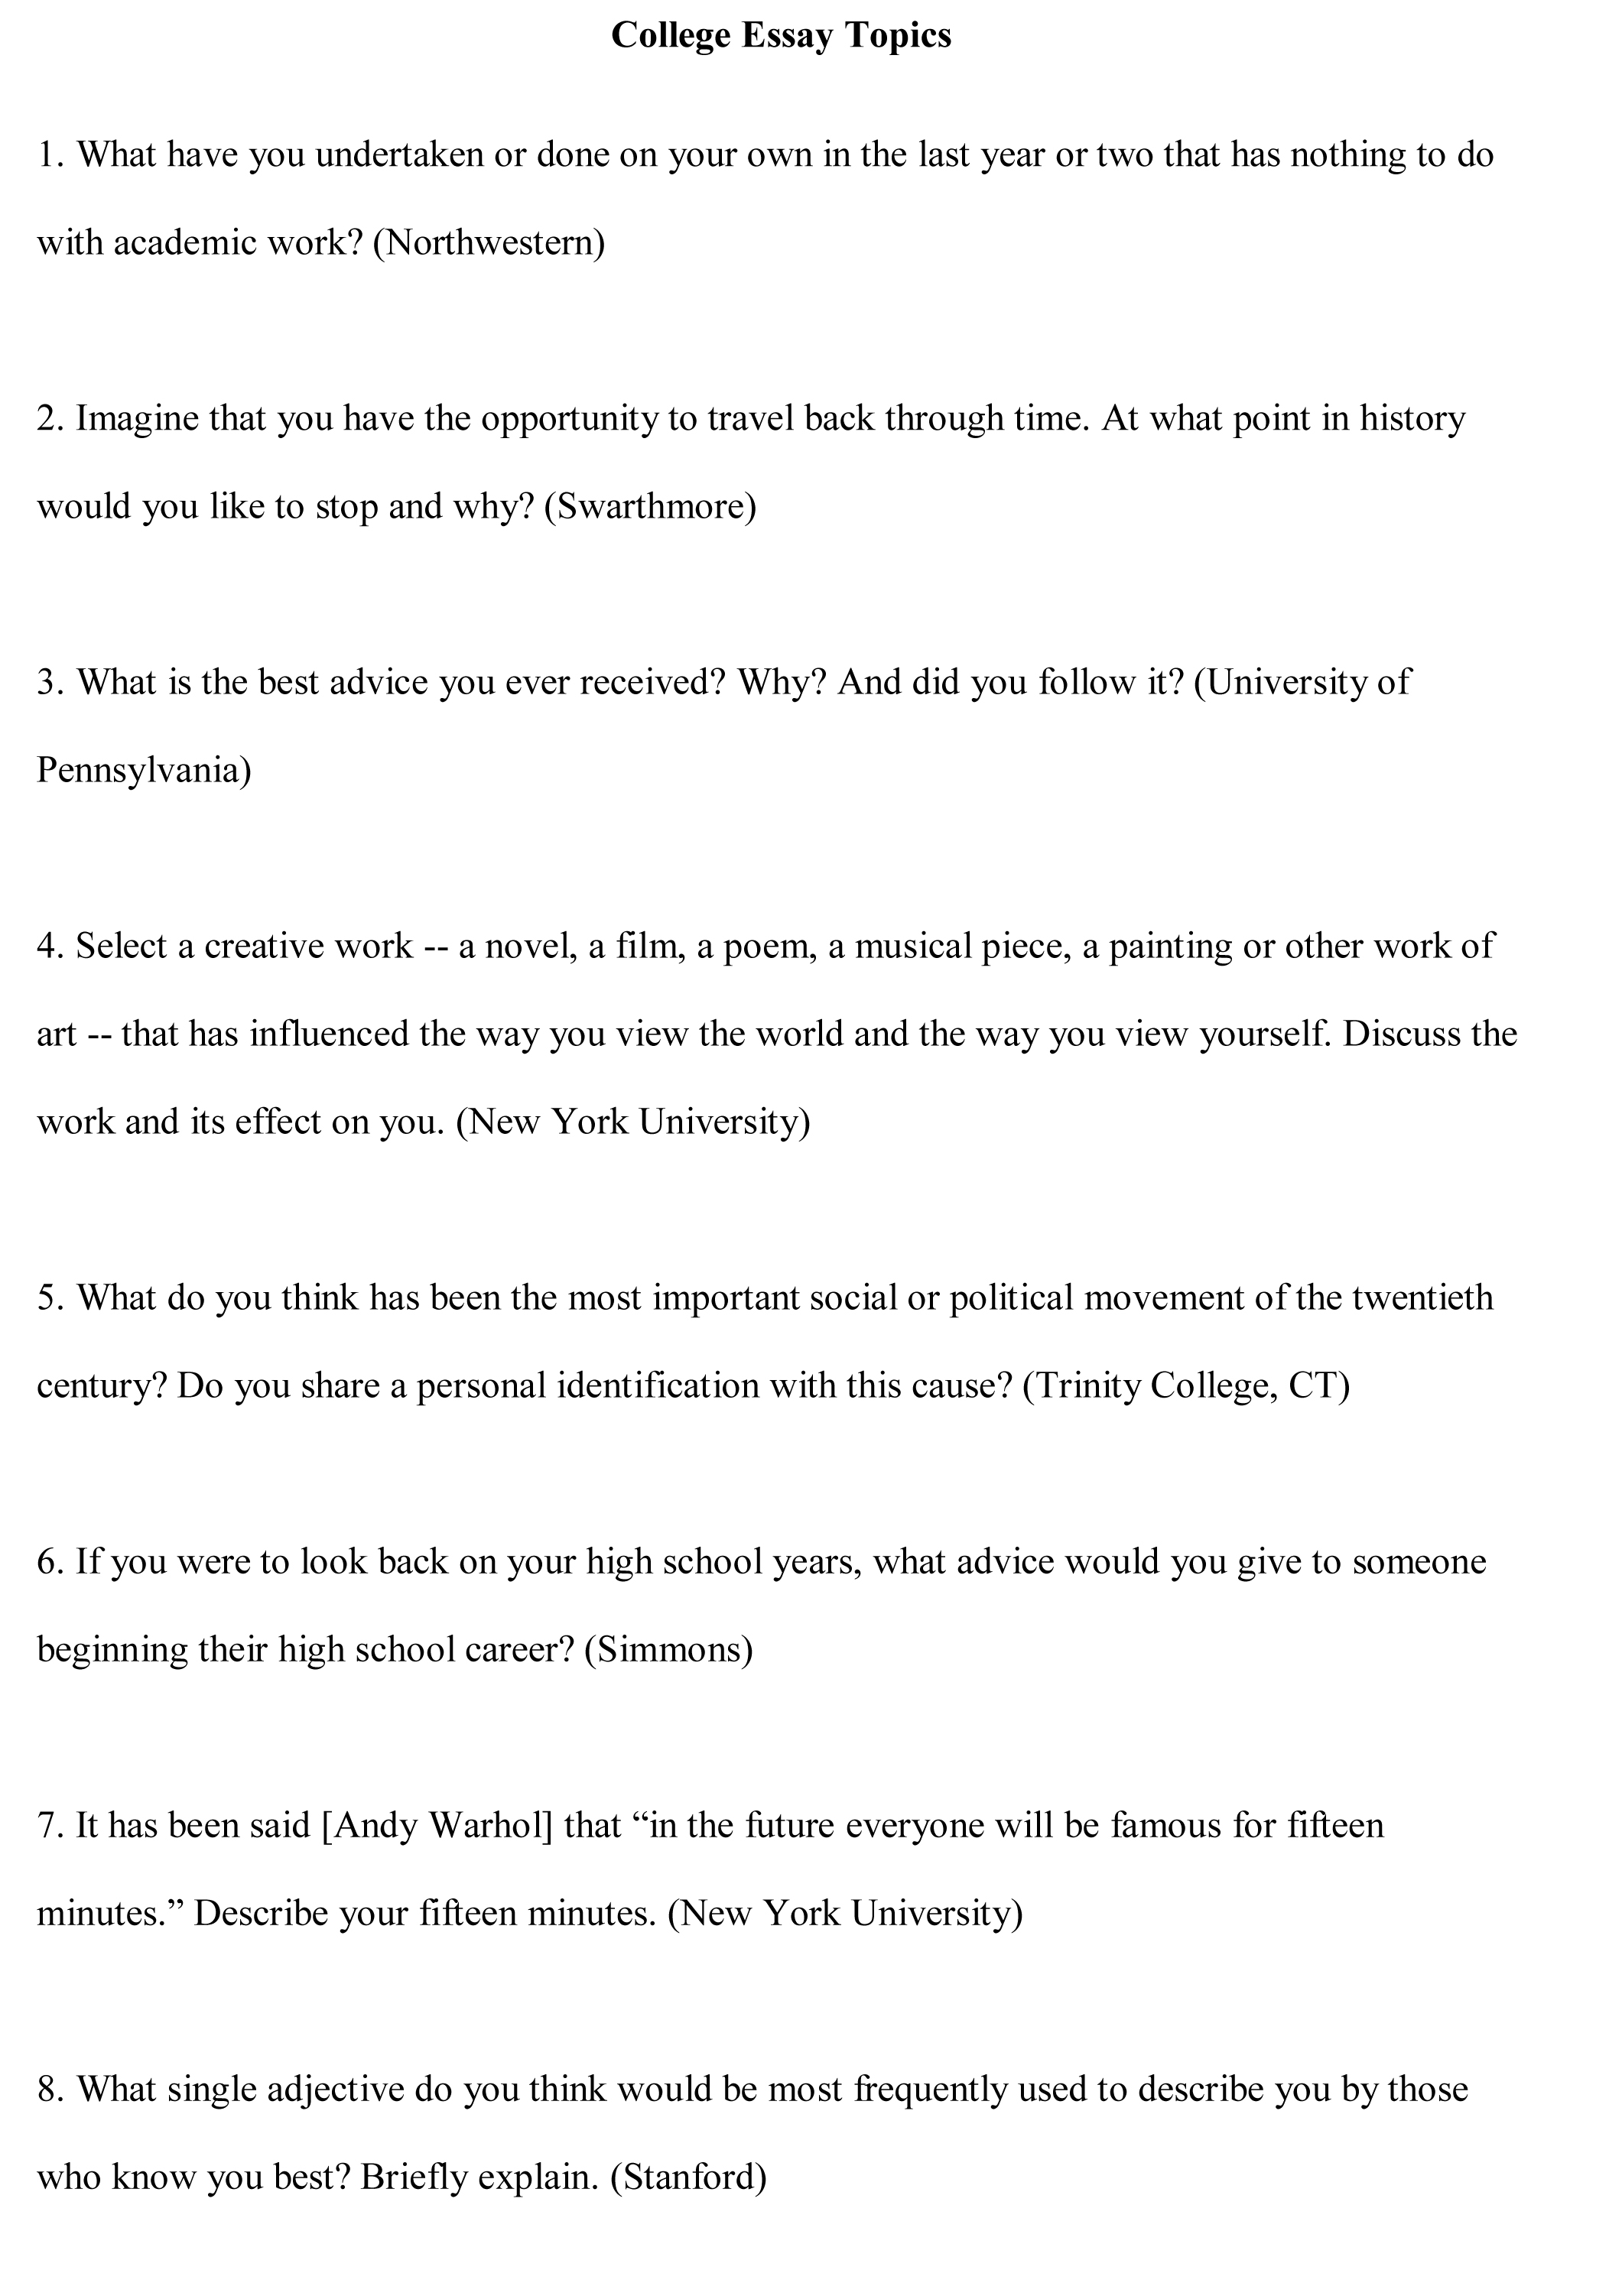 024 College Essay Topics Free Sample1 Example Dreaded Informative Prompts High School 2018 Middle Full